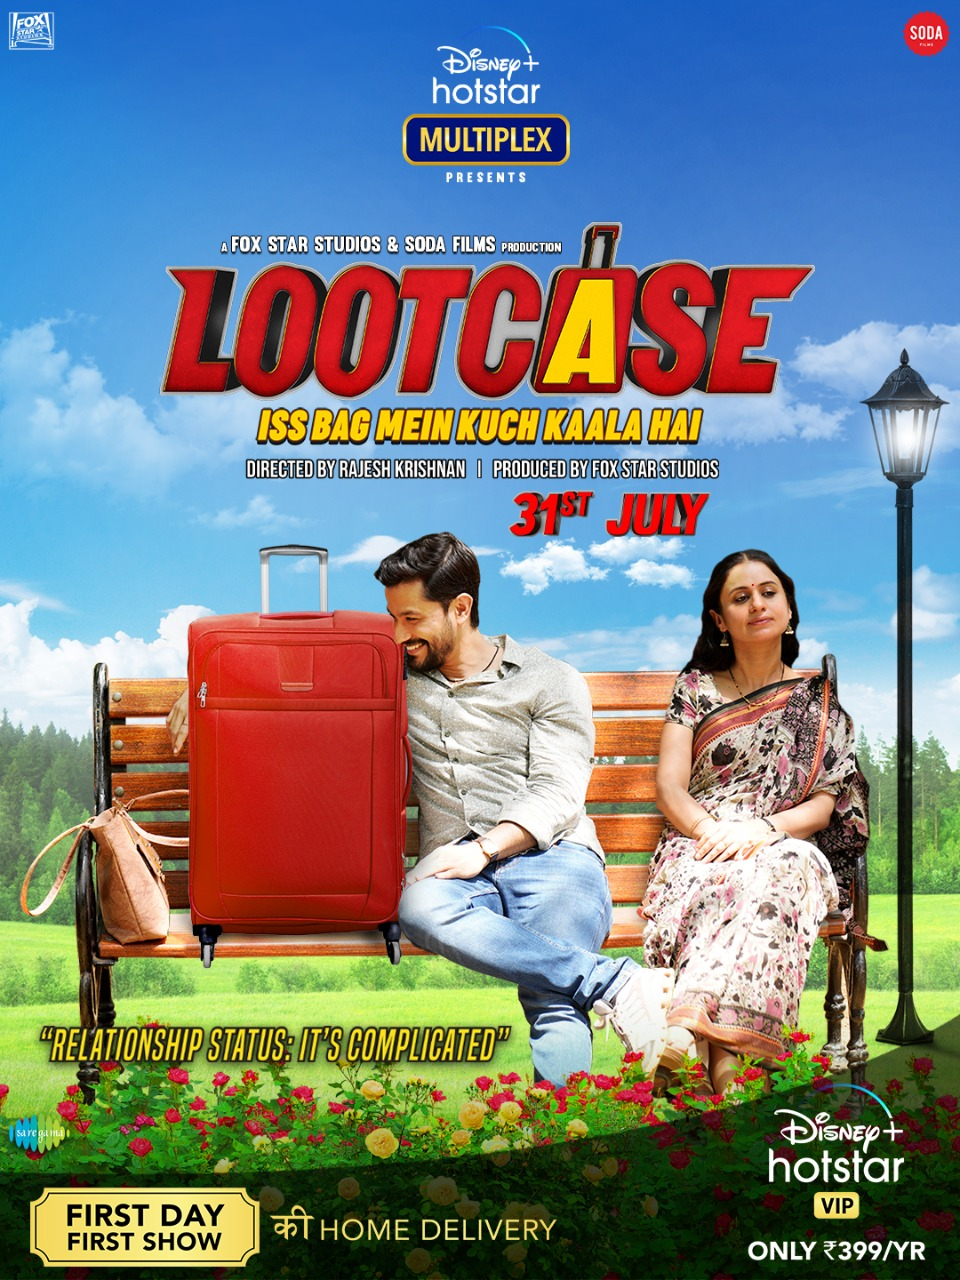 """Fox Star Hindi reveals fun character posters of all the """"nutcases"""" of 'Lootcase'"""